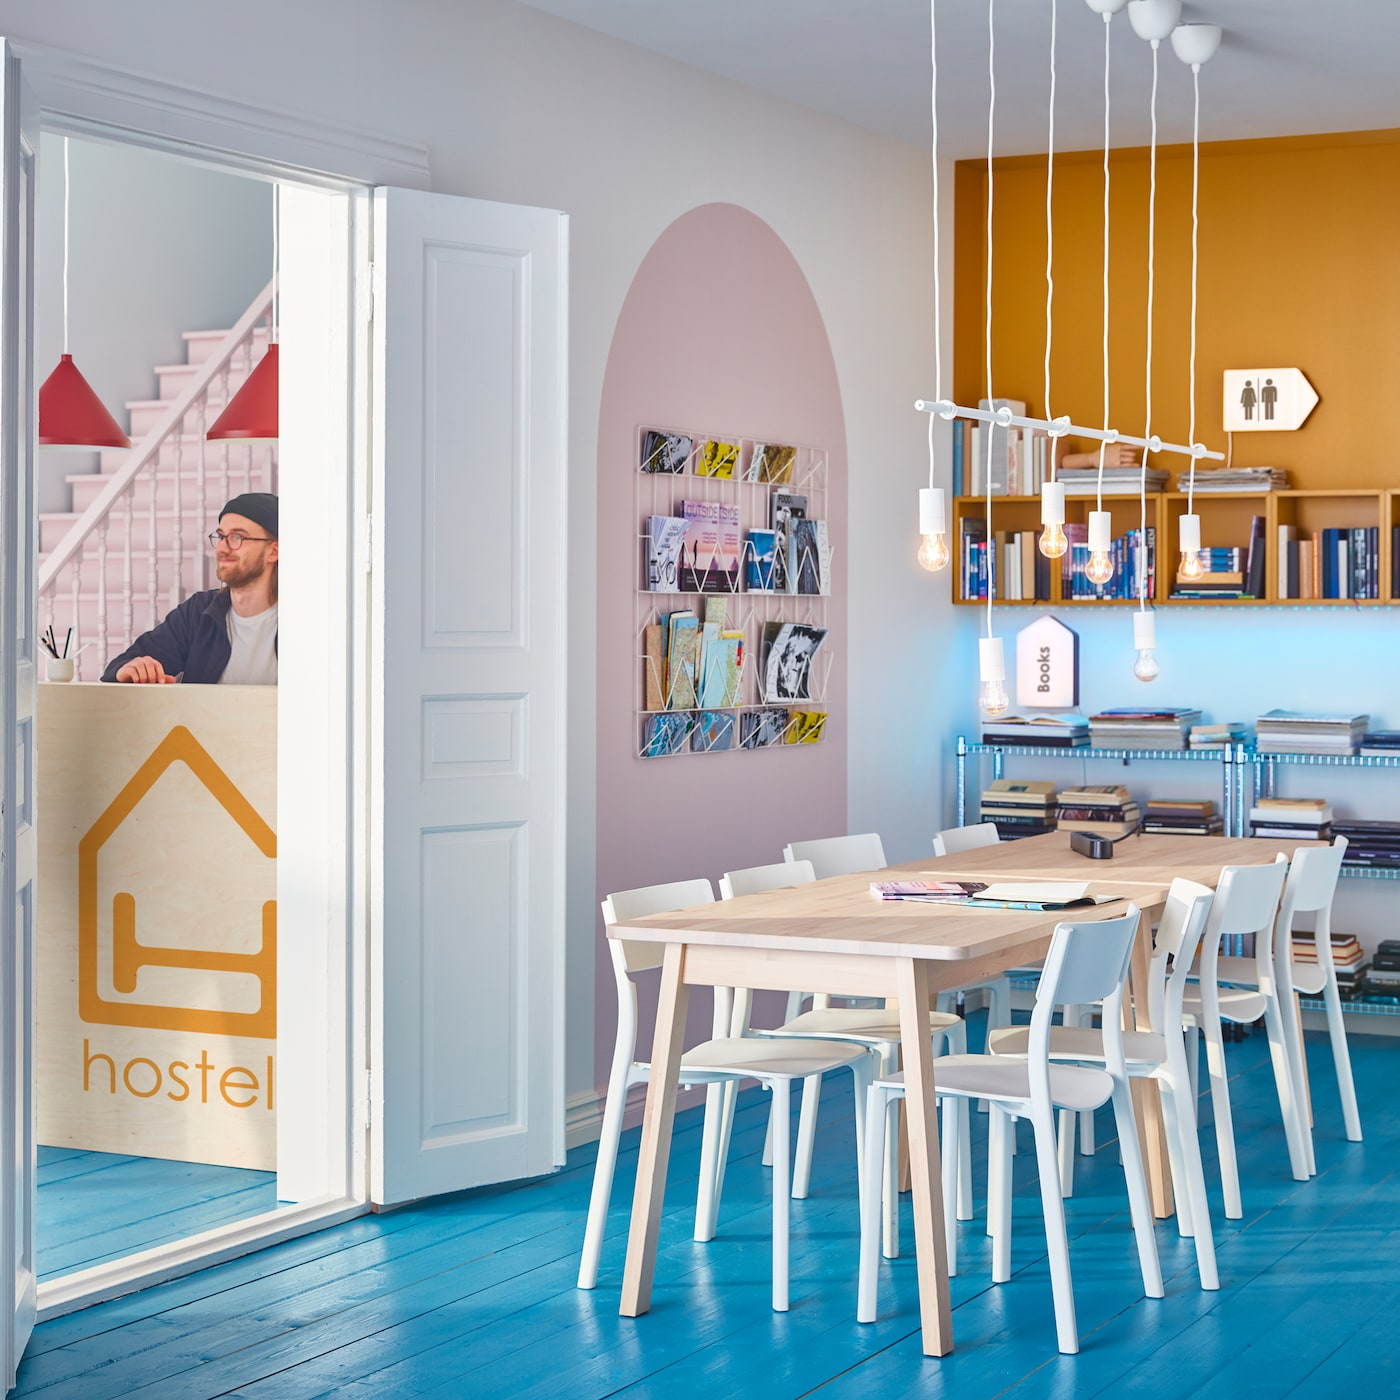 A room with a large wooden table and white chairs in the middle, and wall storage with magazines and books around it.